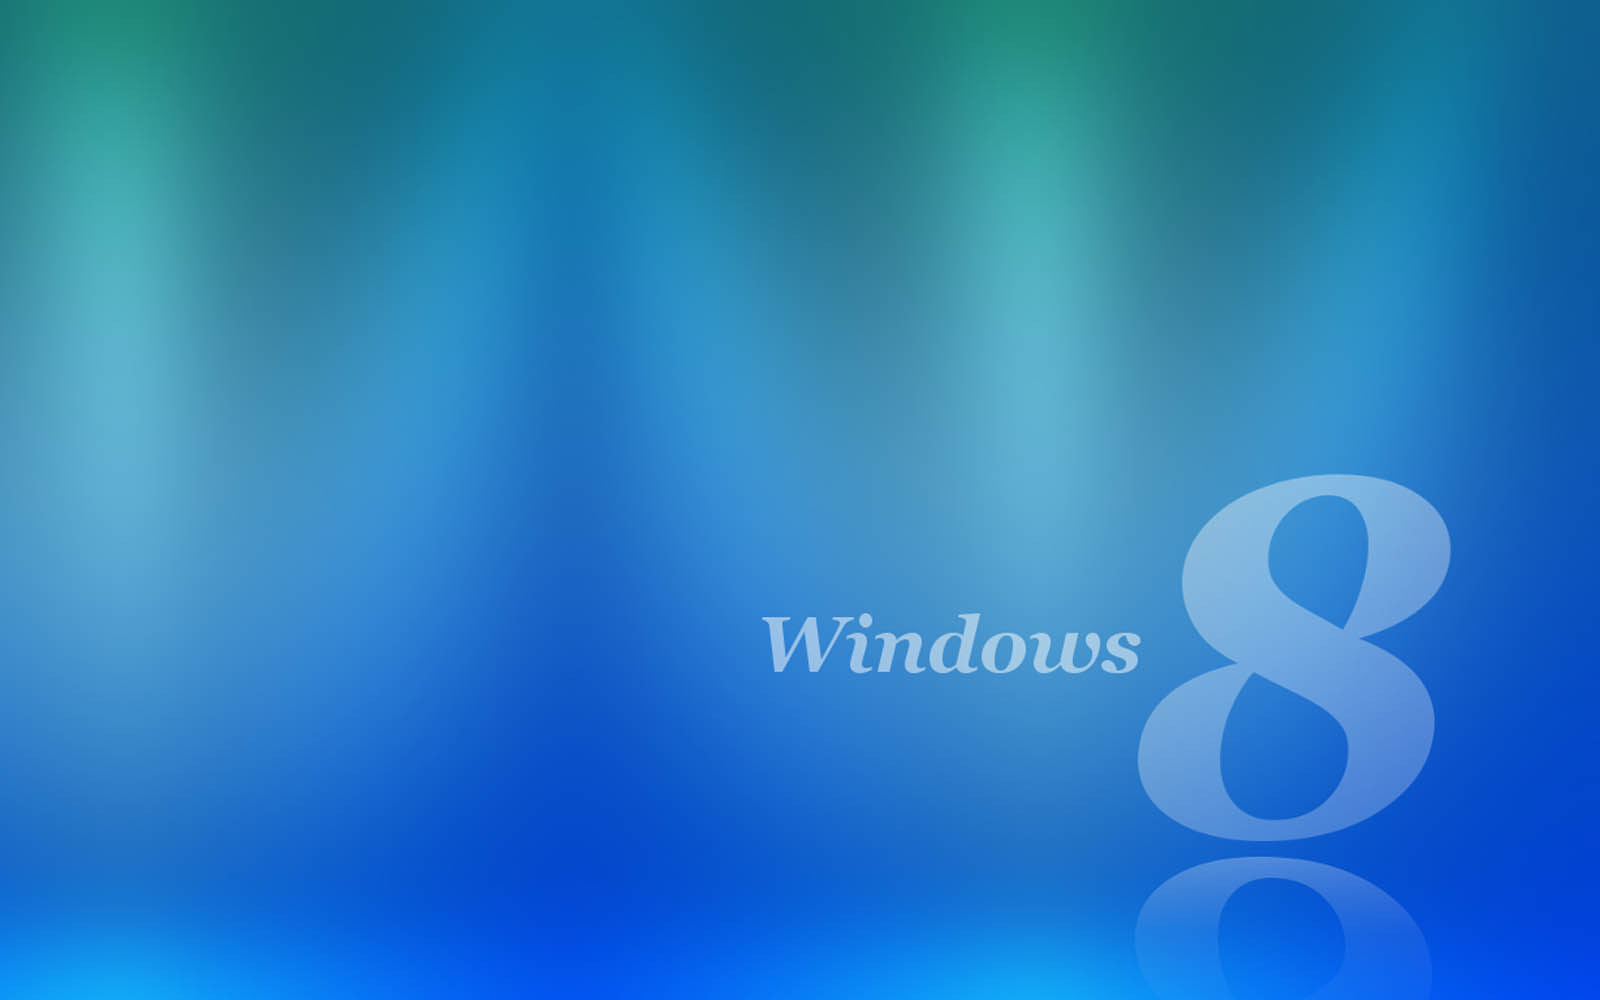 Wallpapers windows 8 backgrounds for Window background